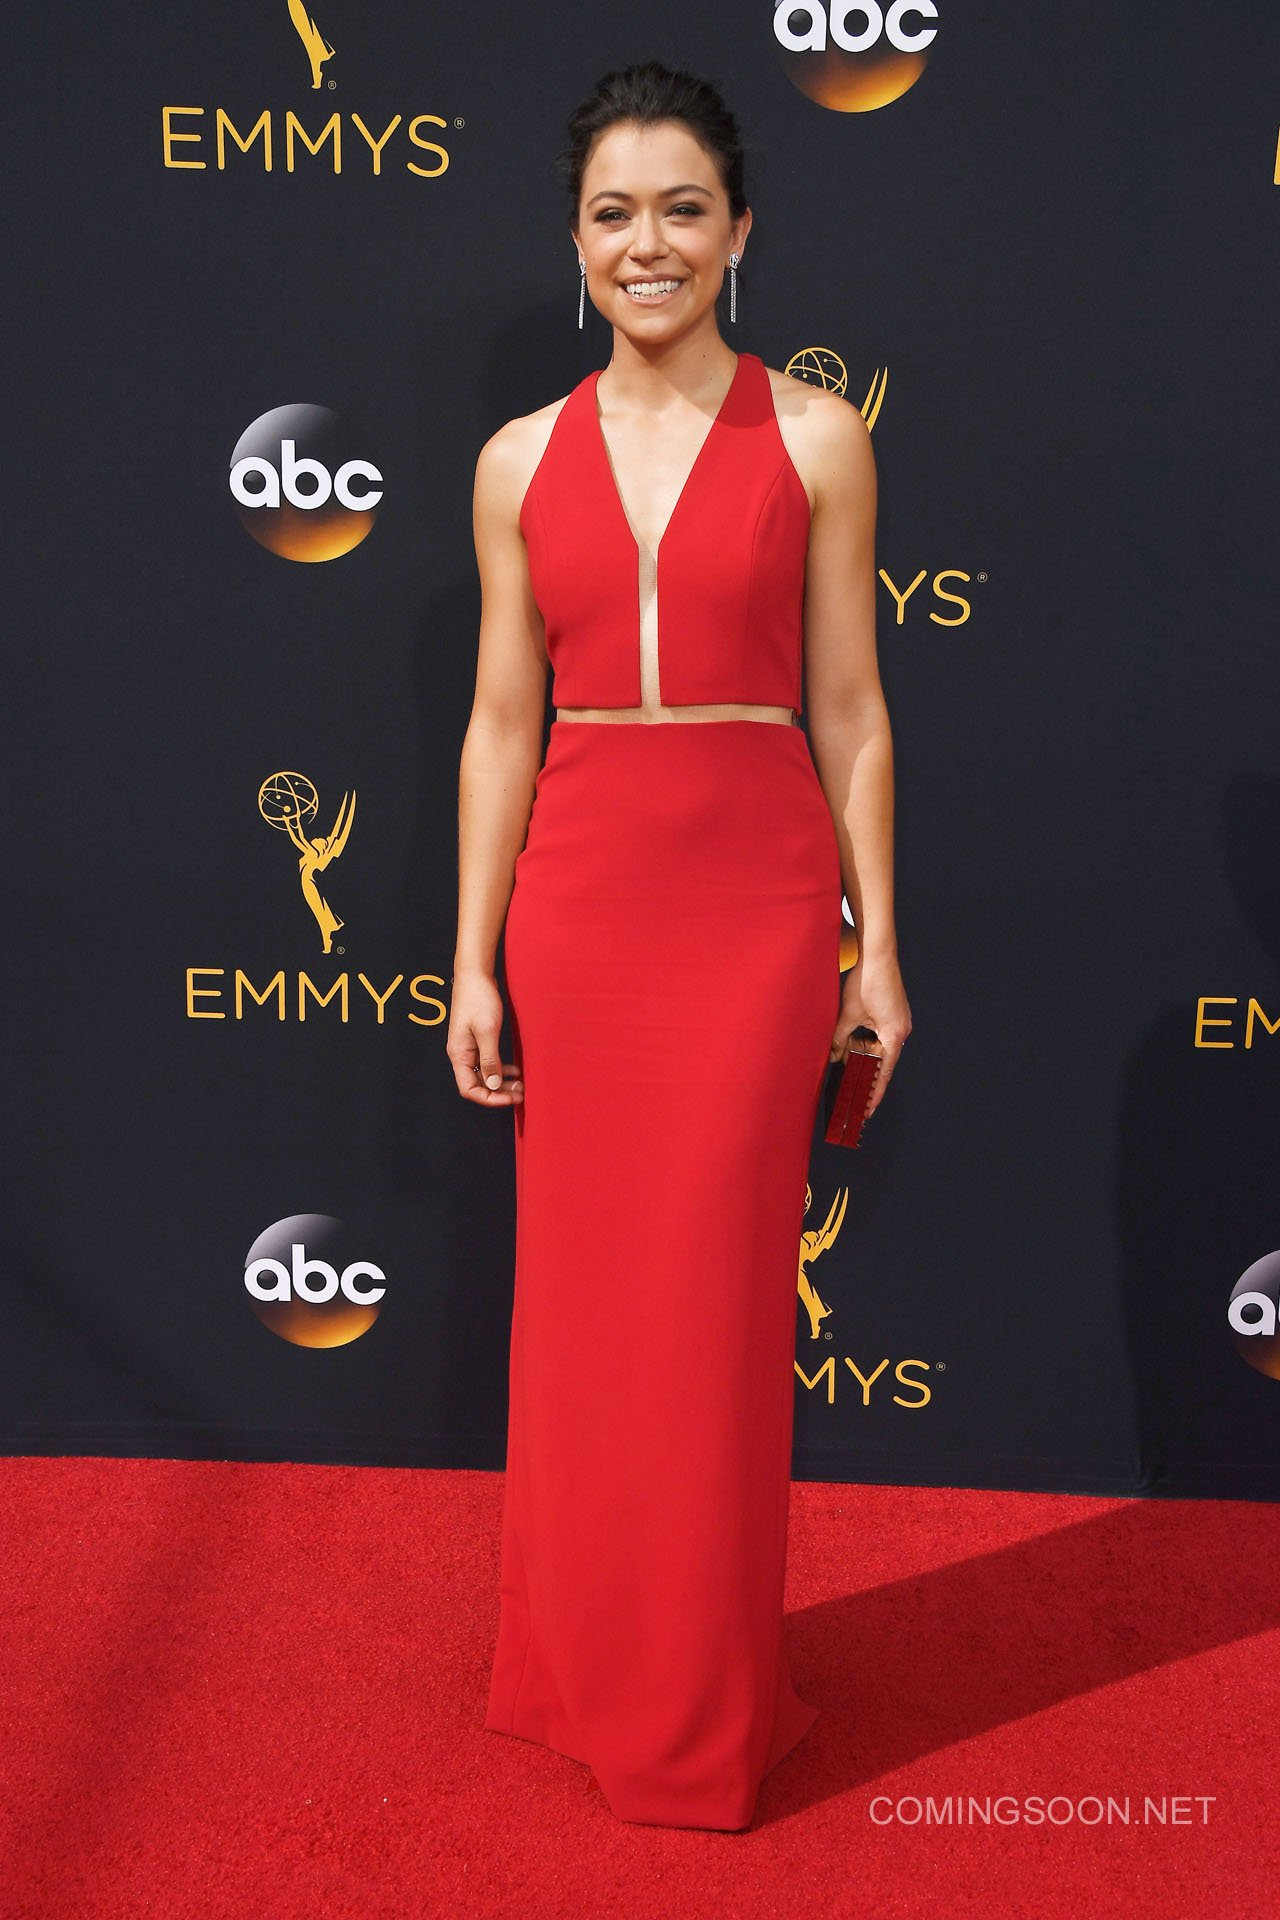 The 68th Annual Emmy Awards